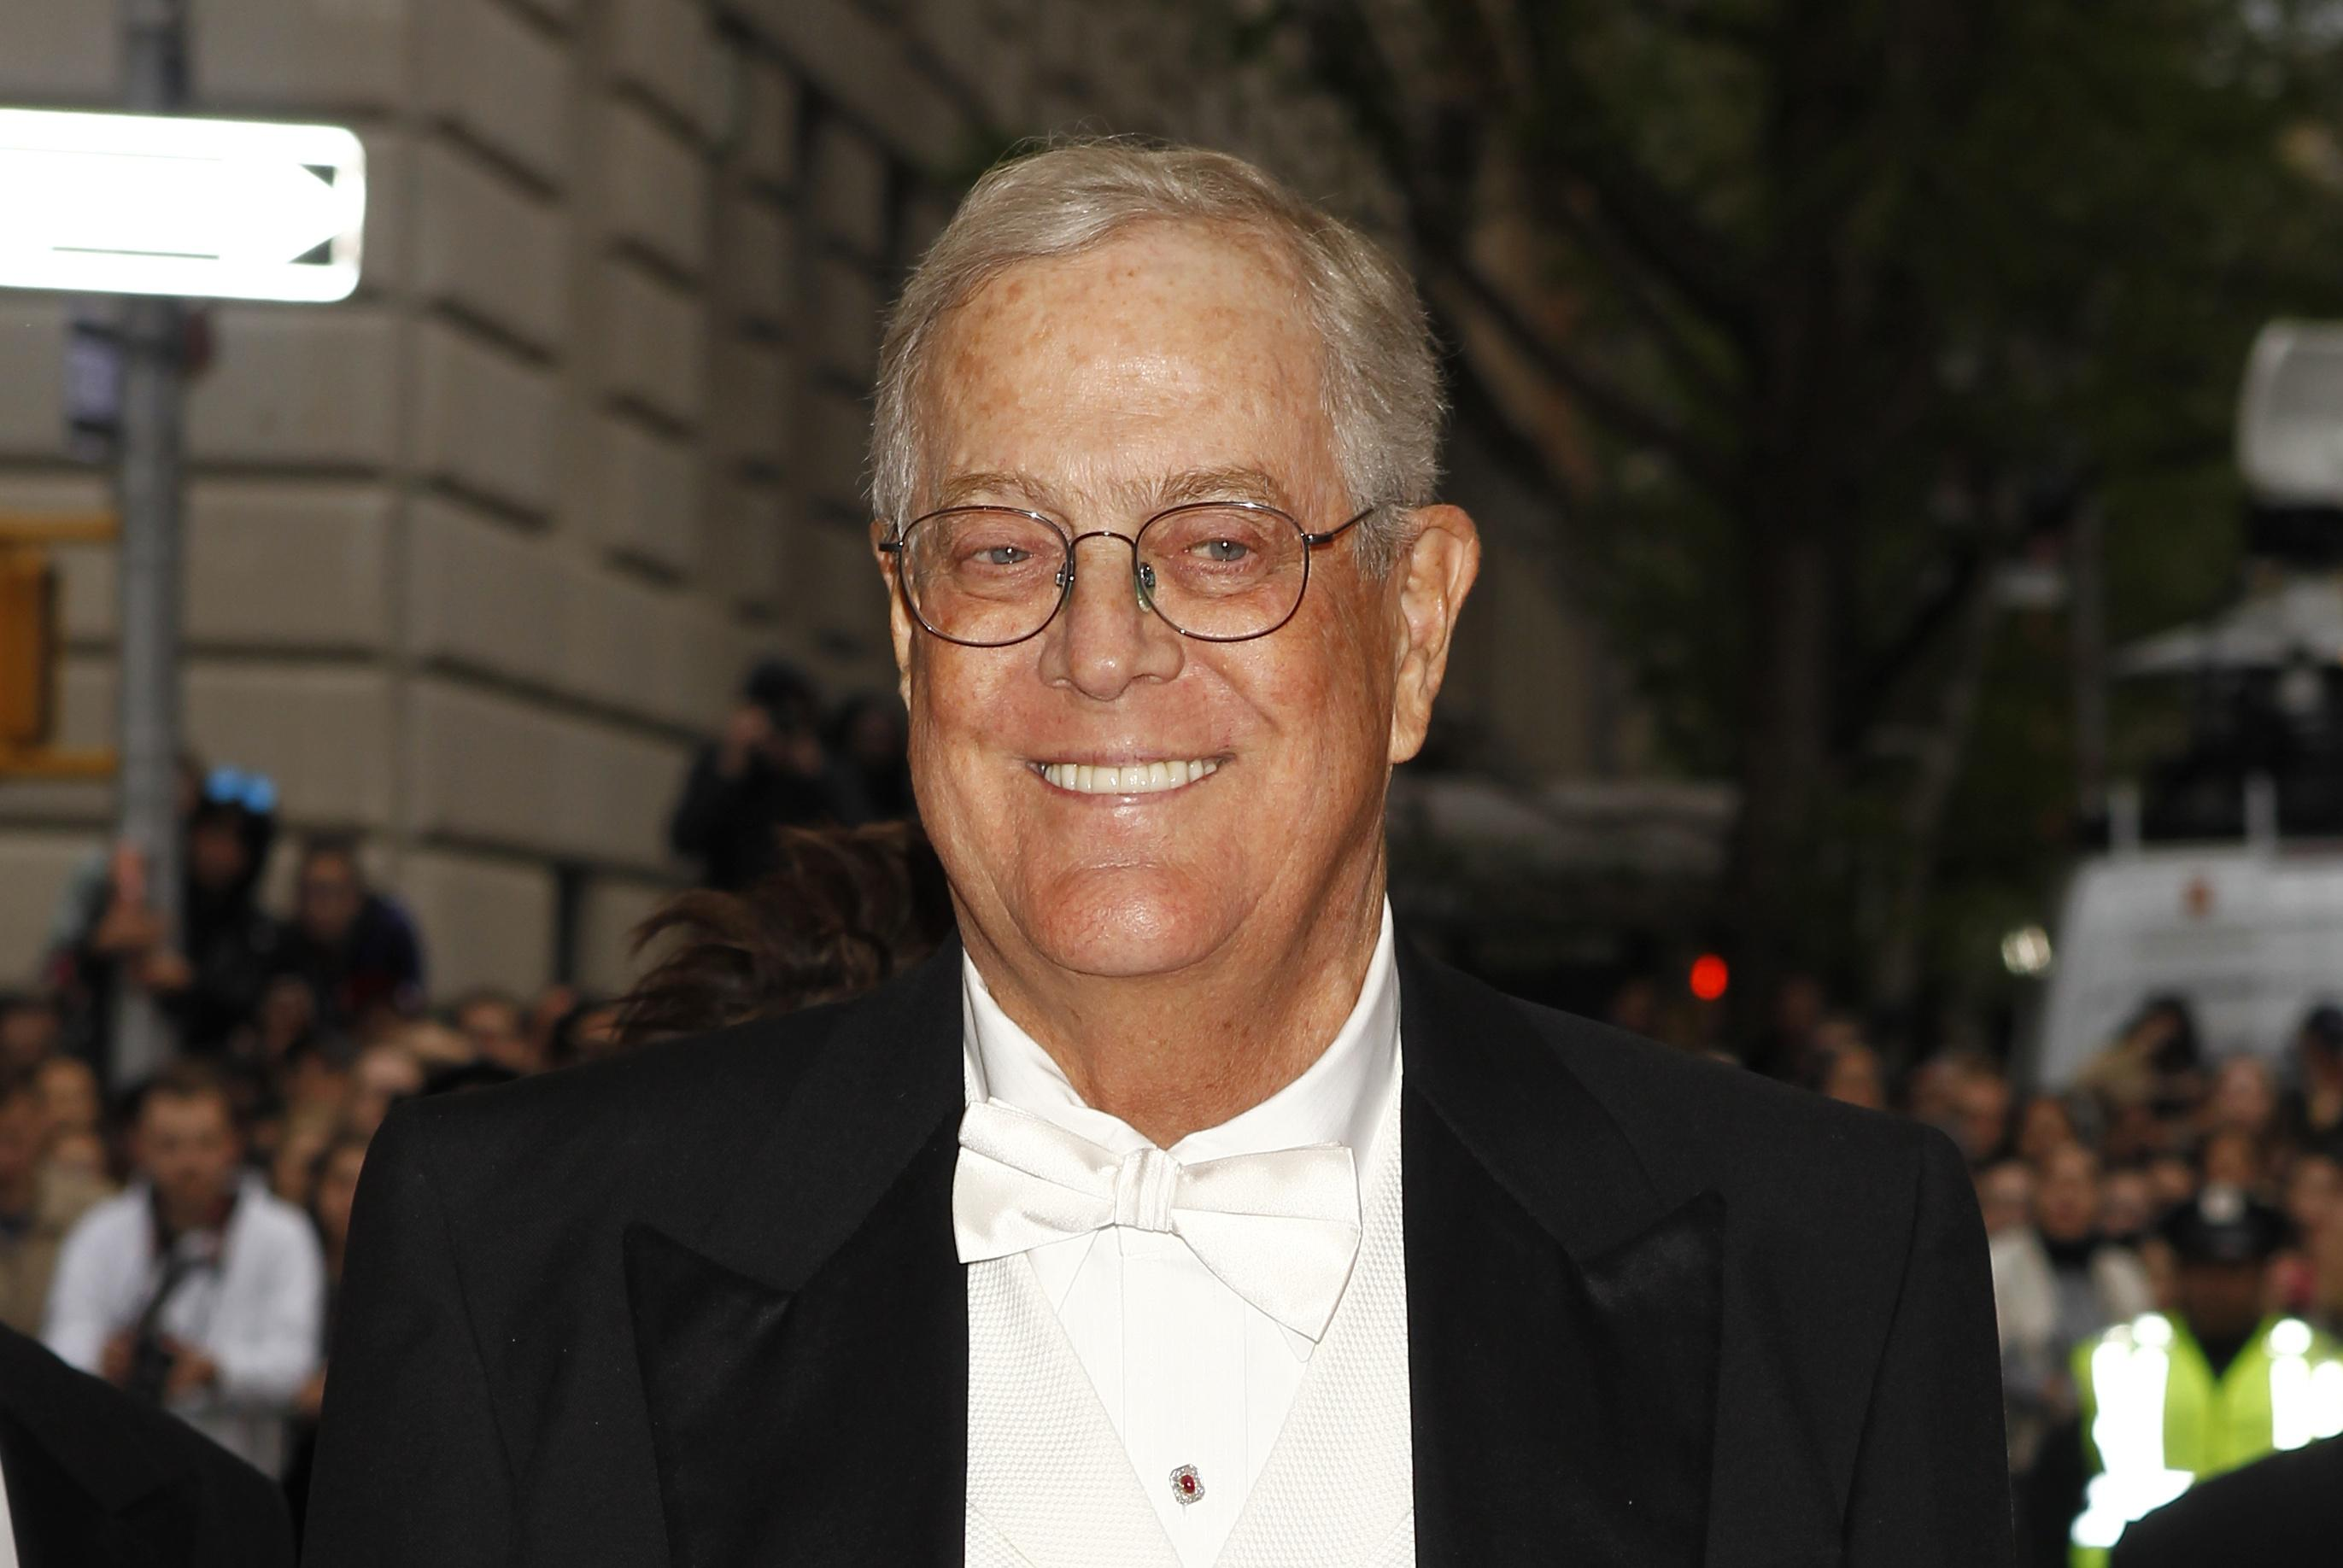 Billionaire Political Donor David Koch Retires